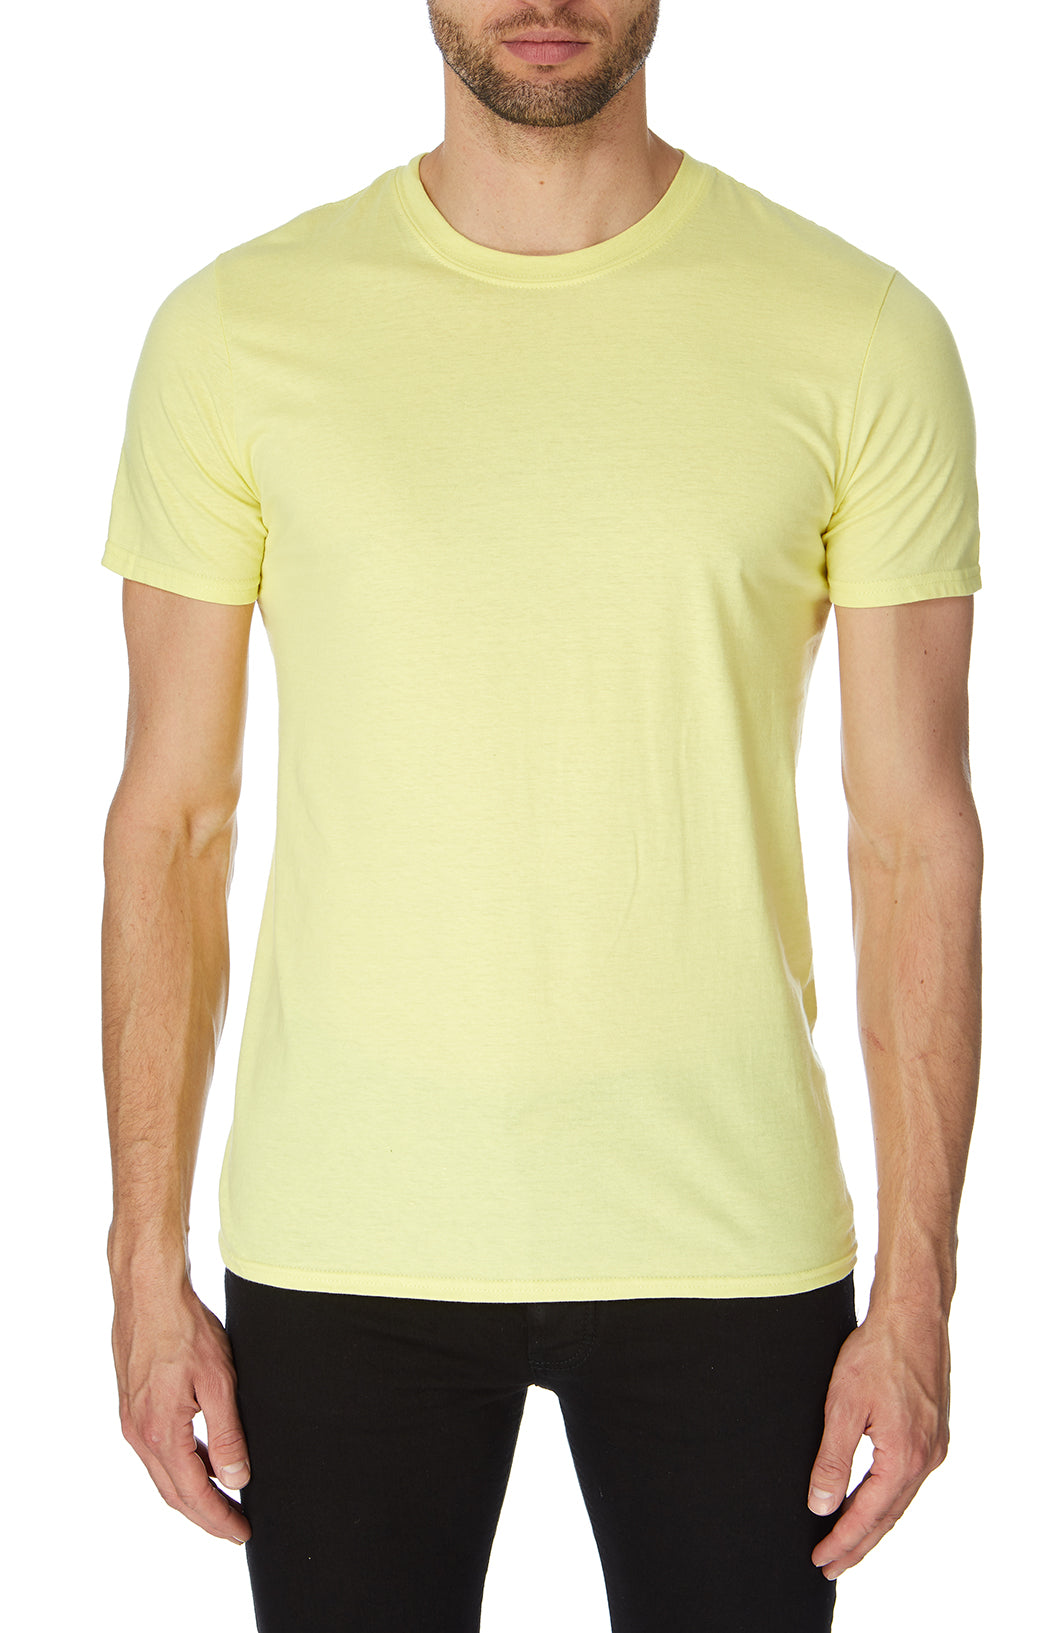 Serpentry T-shirt Neon Yellow